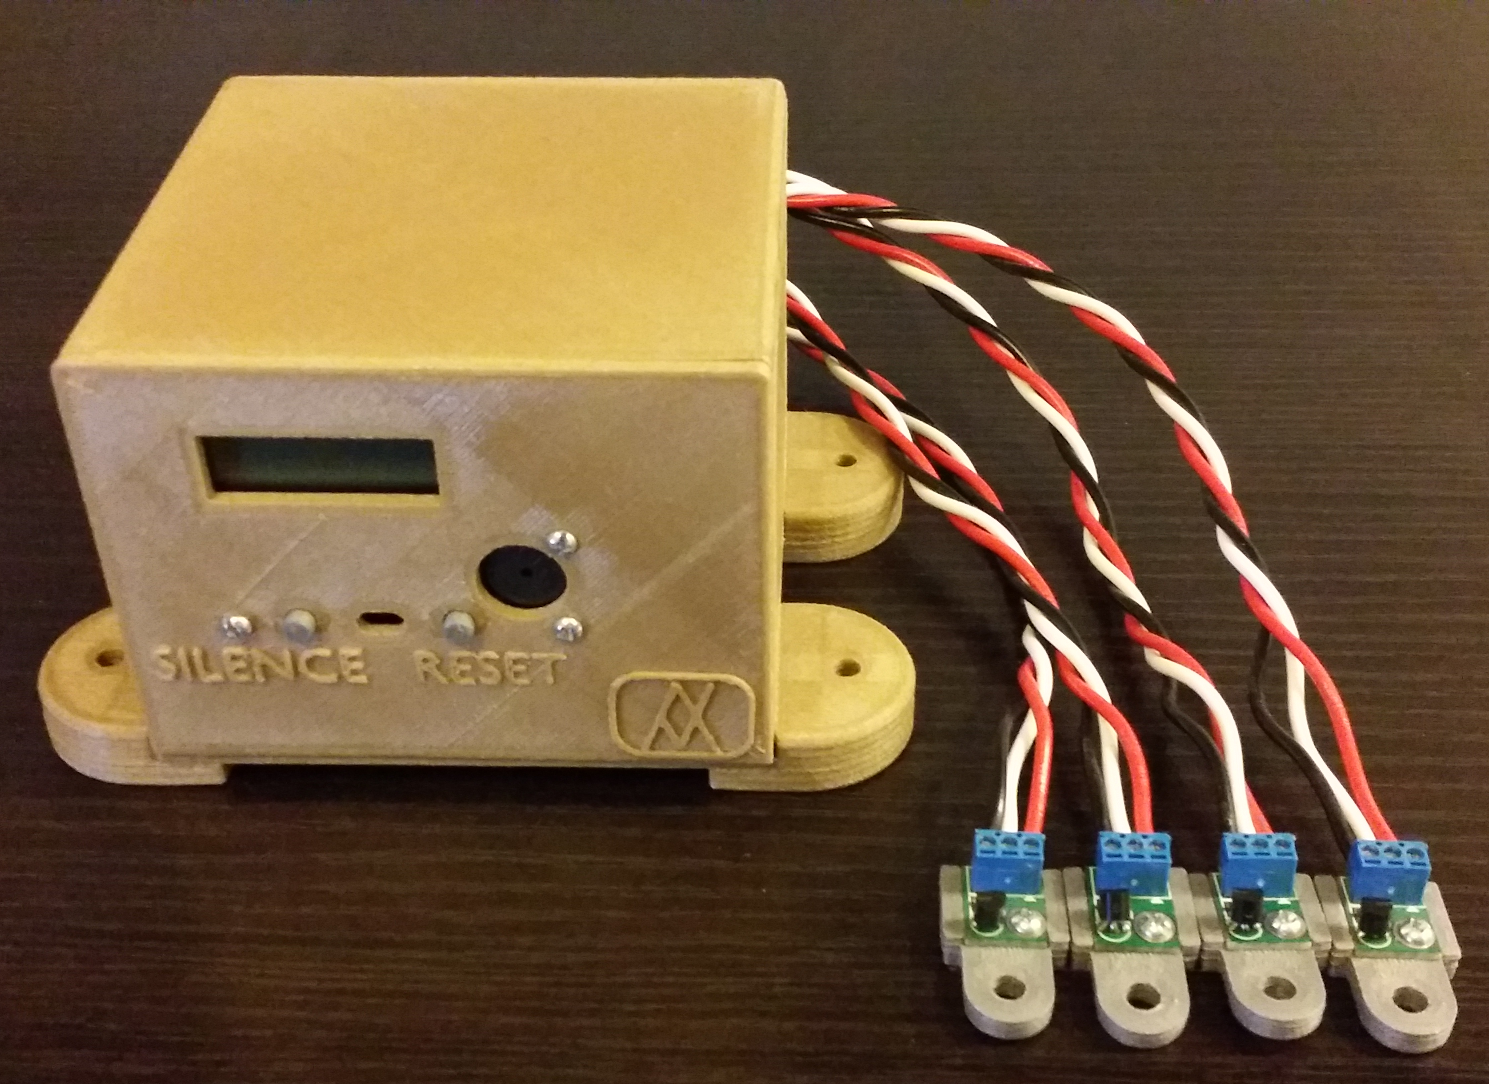 Assembled Device With Temperature Sensors Attached